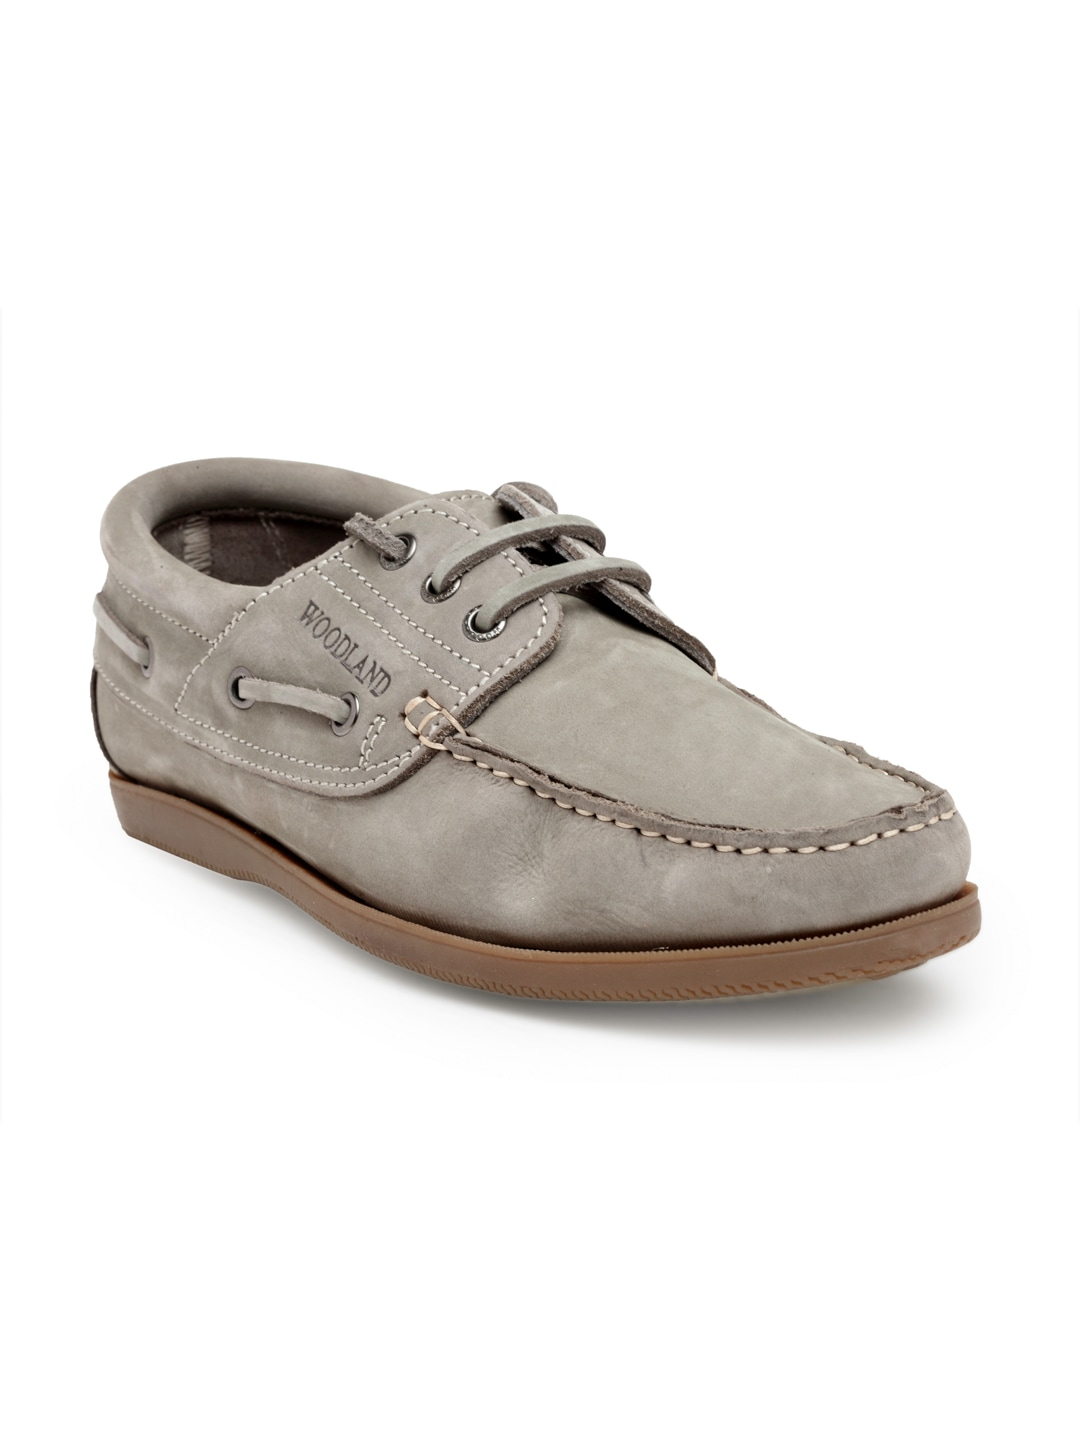 size 40 5eb5d 55a46 Online Online Online For Myntra Myntra Myntra Men Shoes Buy Woodland q4TPaT